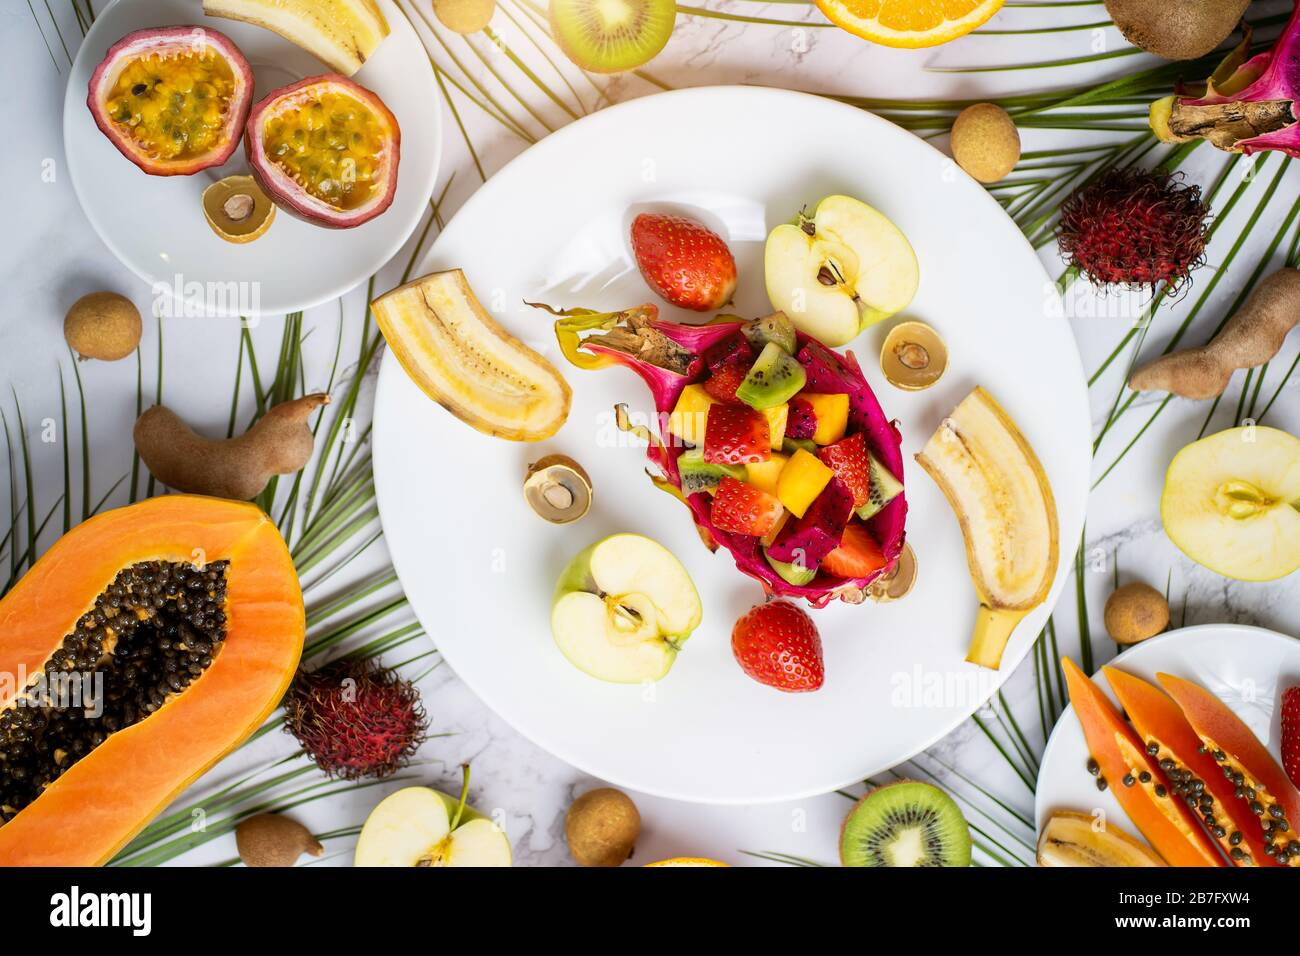 Healthy Breakfast From Tropical Exotic Ripe Juicy Fruits On Plates On Table Delicious Snack Travel Vacation Vitamins Summer Concept Top View Fl Stock Photo Alamy